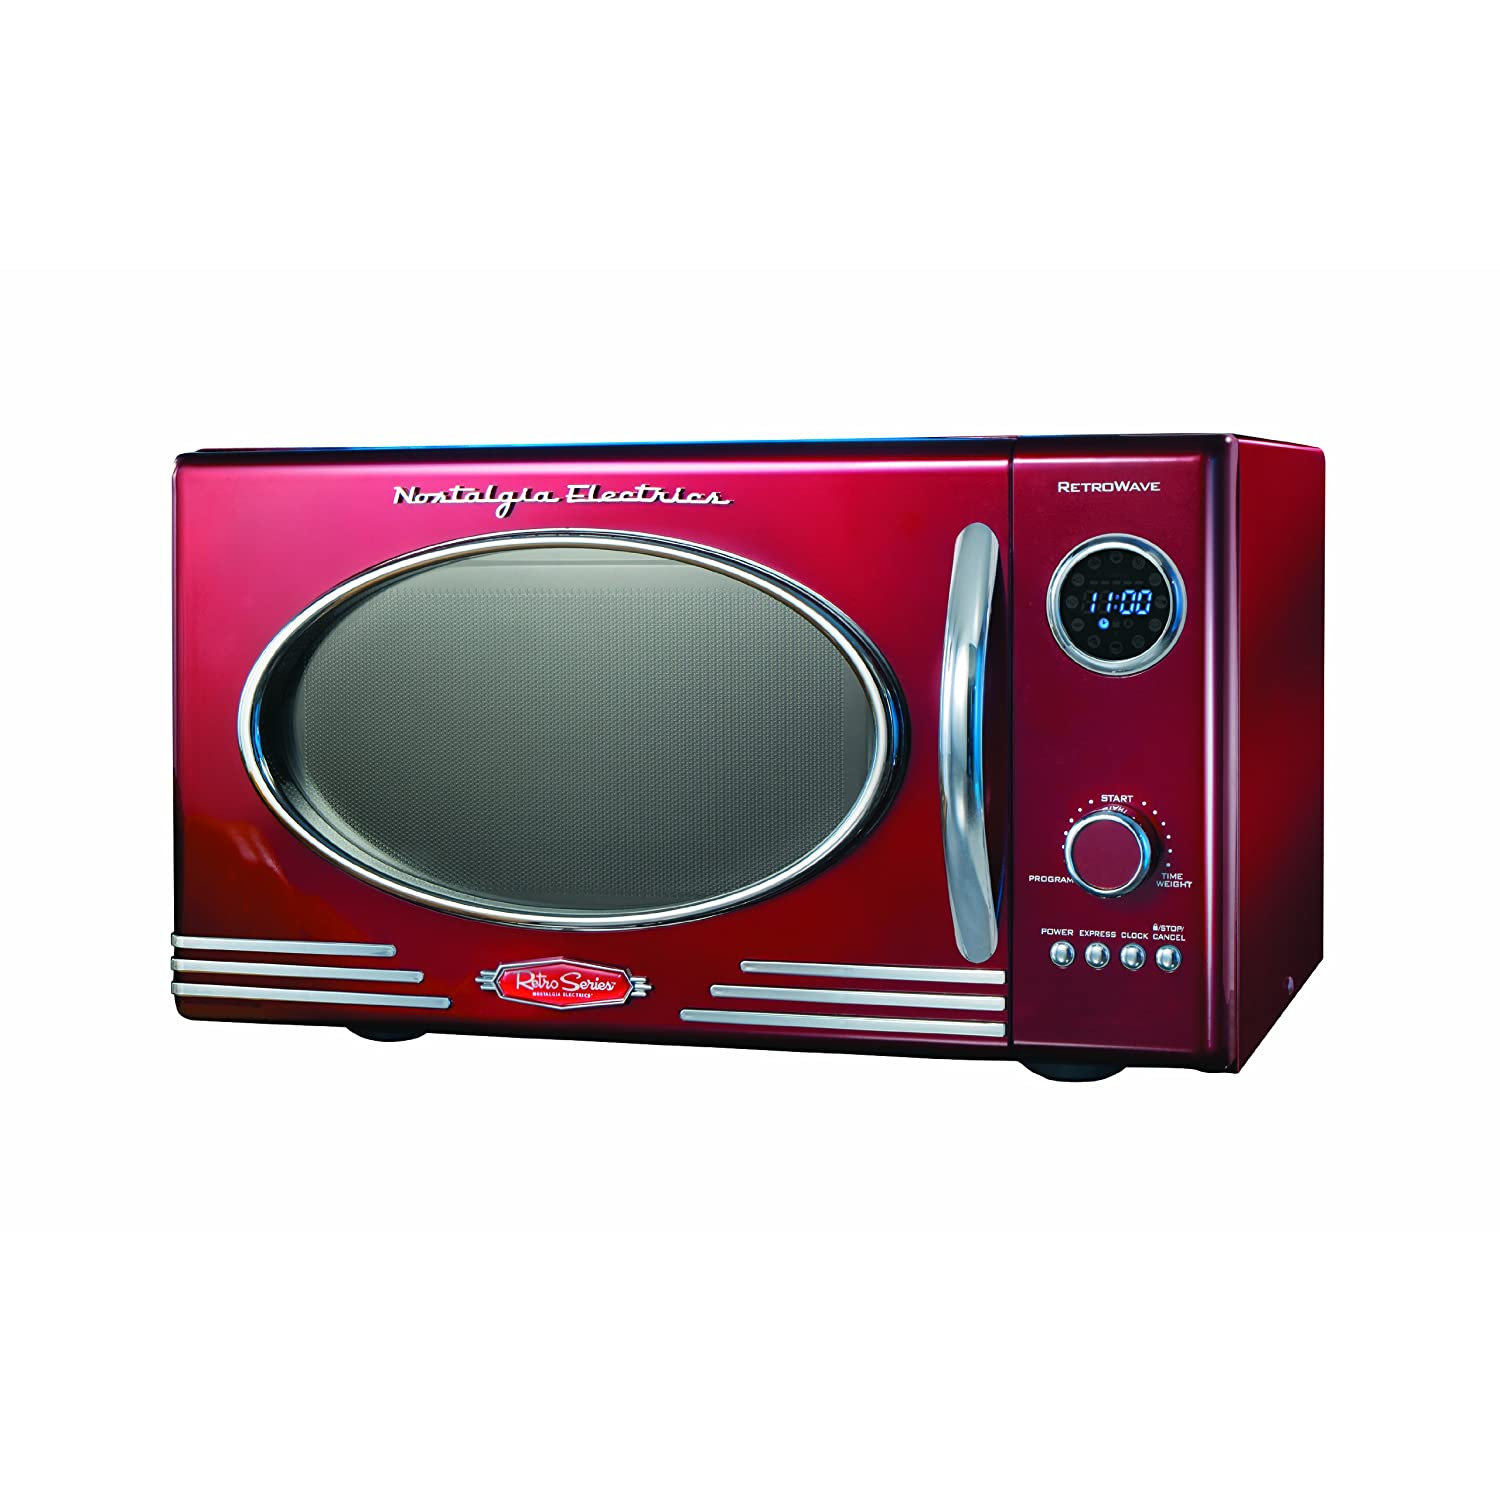 Nostalgia Electrics RMO-400RED Retro Series .9 CF Microwave Oven, Red